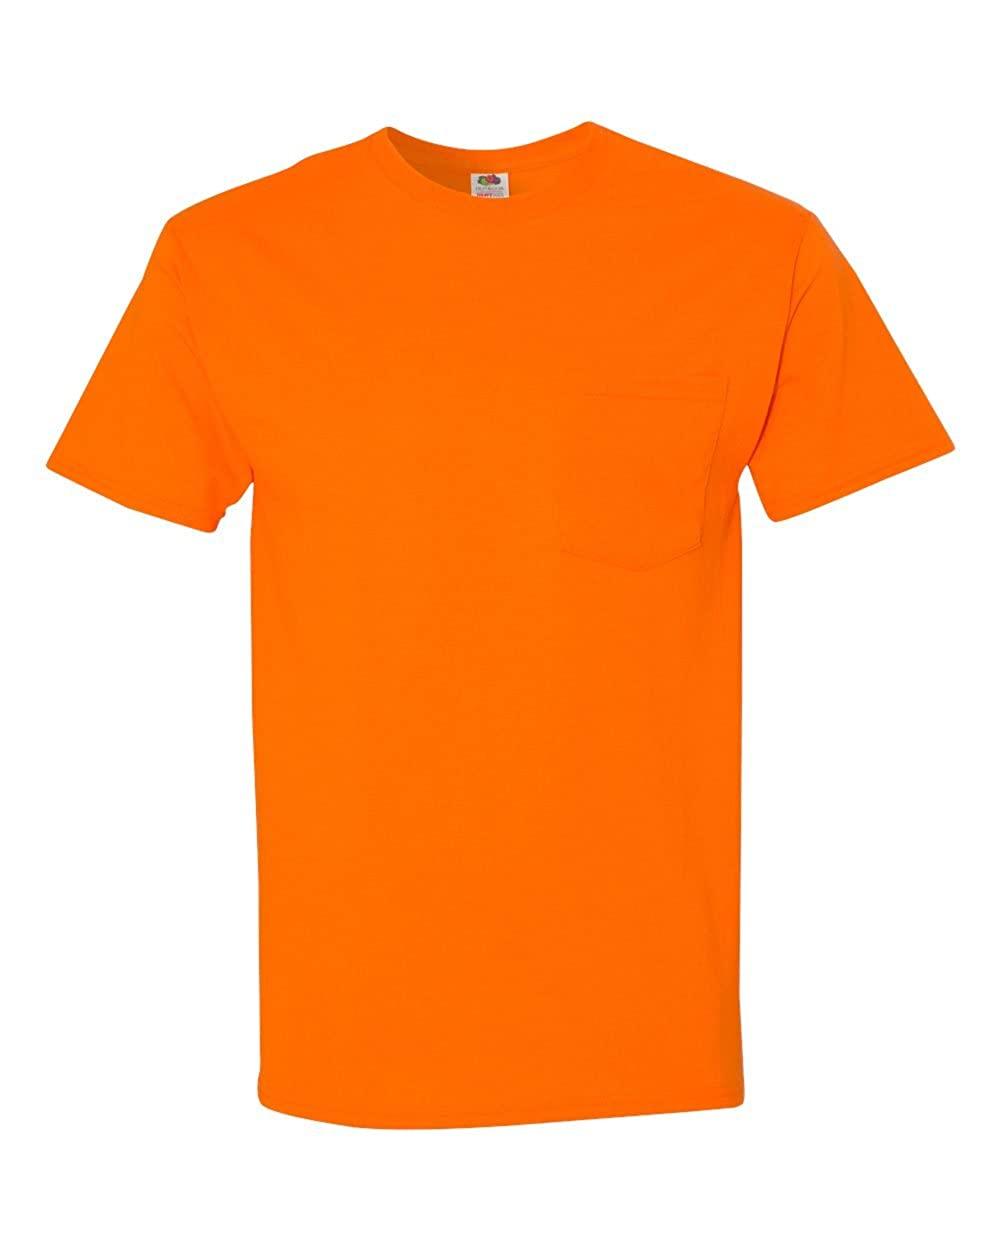 Fruit of the Loom Mens Heavy Cotton HD T-Shirt with Pocket